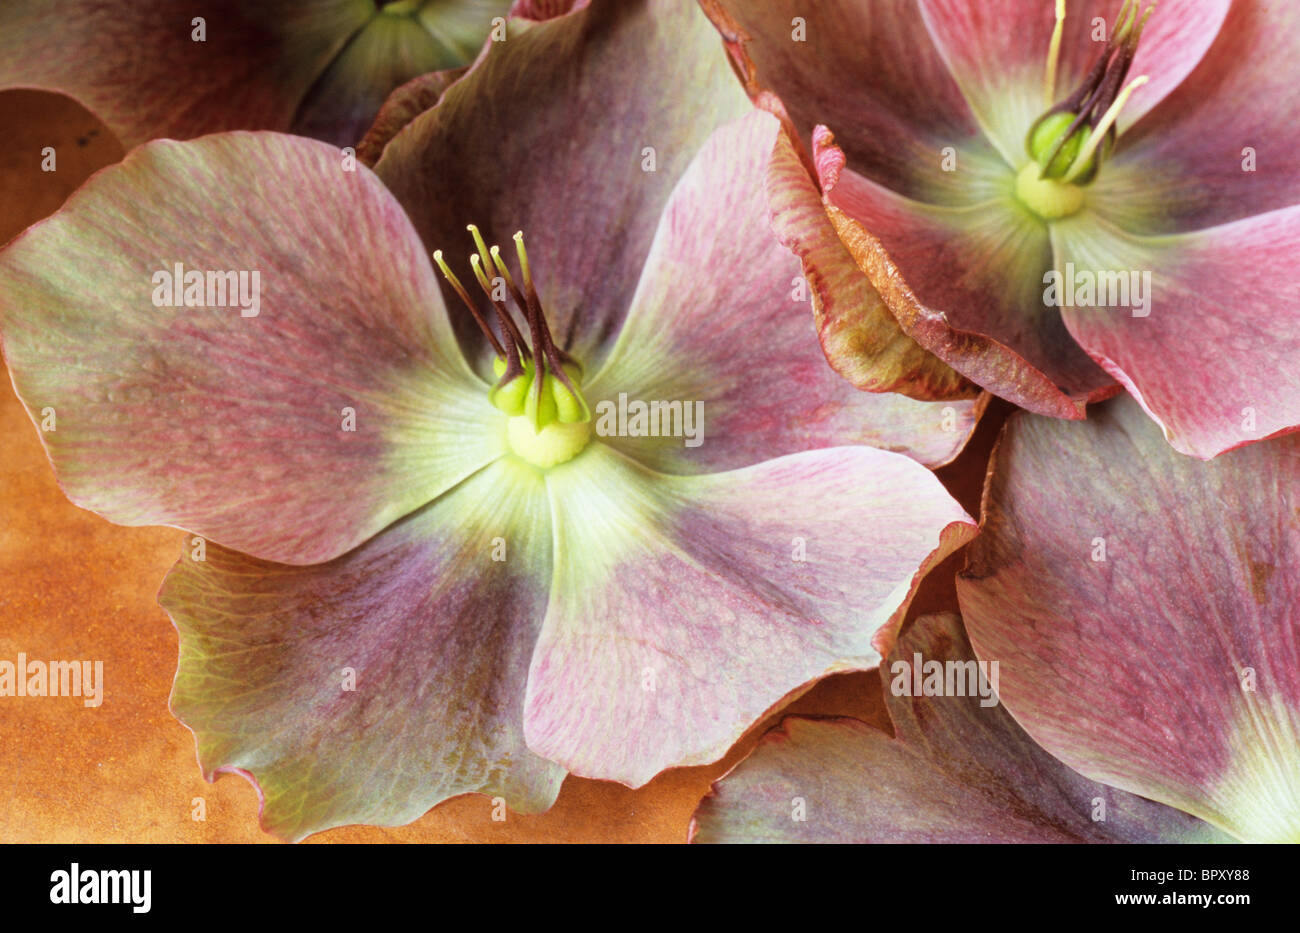 Close up of pink and white flowers of Lenten rose or Helleborus orientalis lying together and past their prime - Stock Image